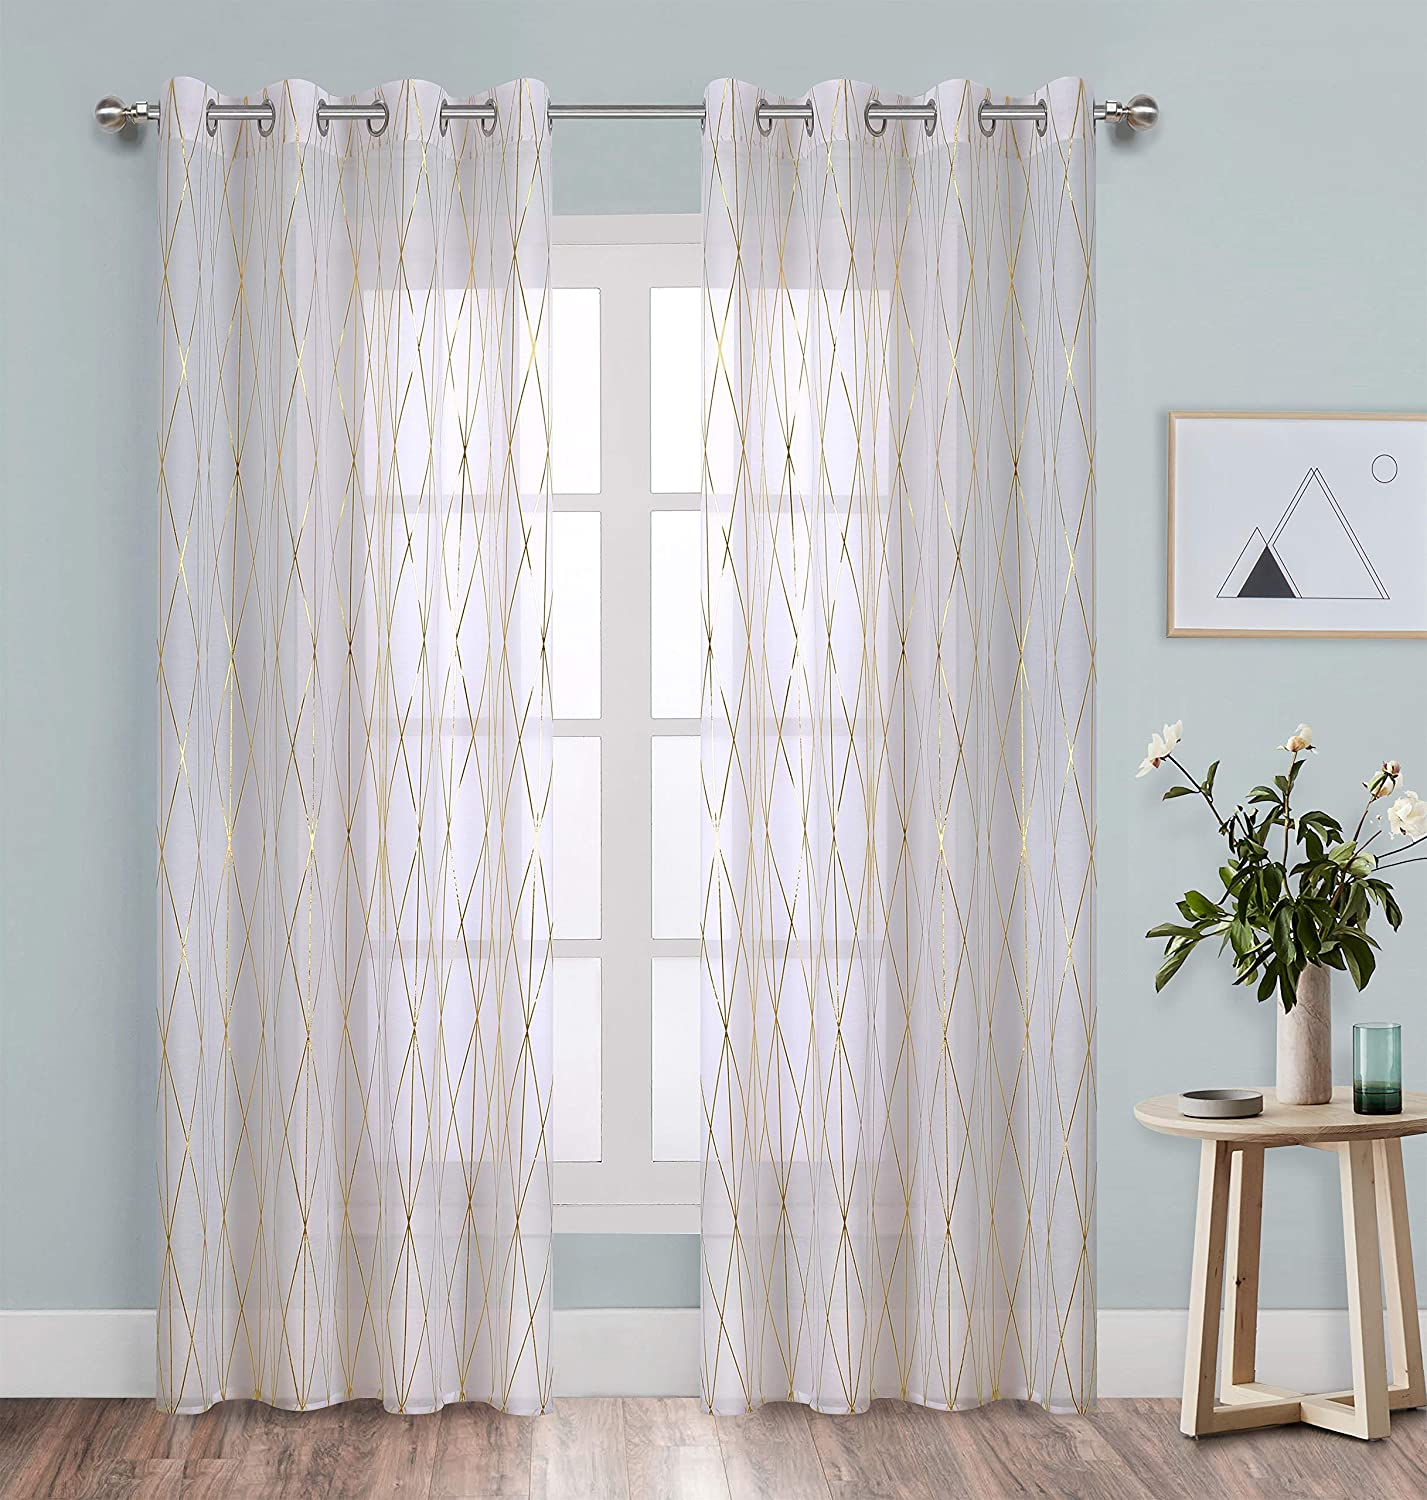 Sheer Curtains 84 inch Long White Voile with Gold Geometric line Foil Print Perfect for Nursey / Kid's Bedroom Eeylet 2 Pieces